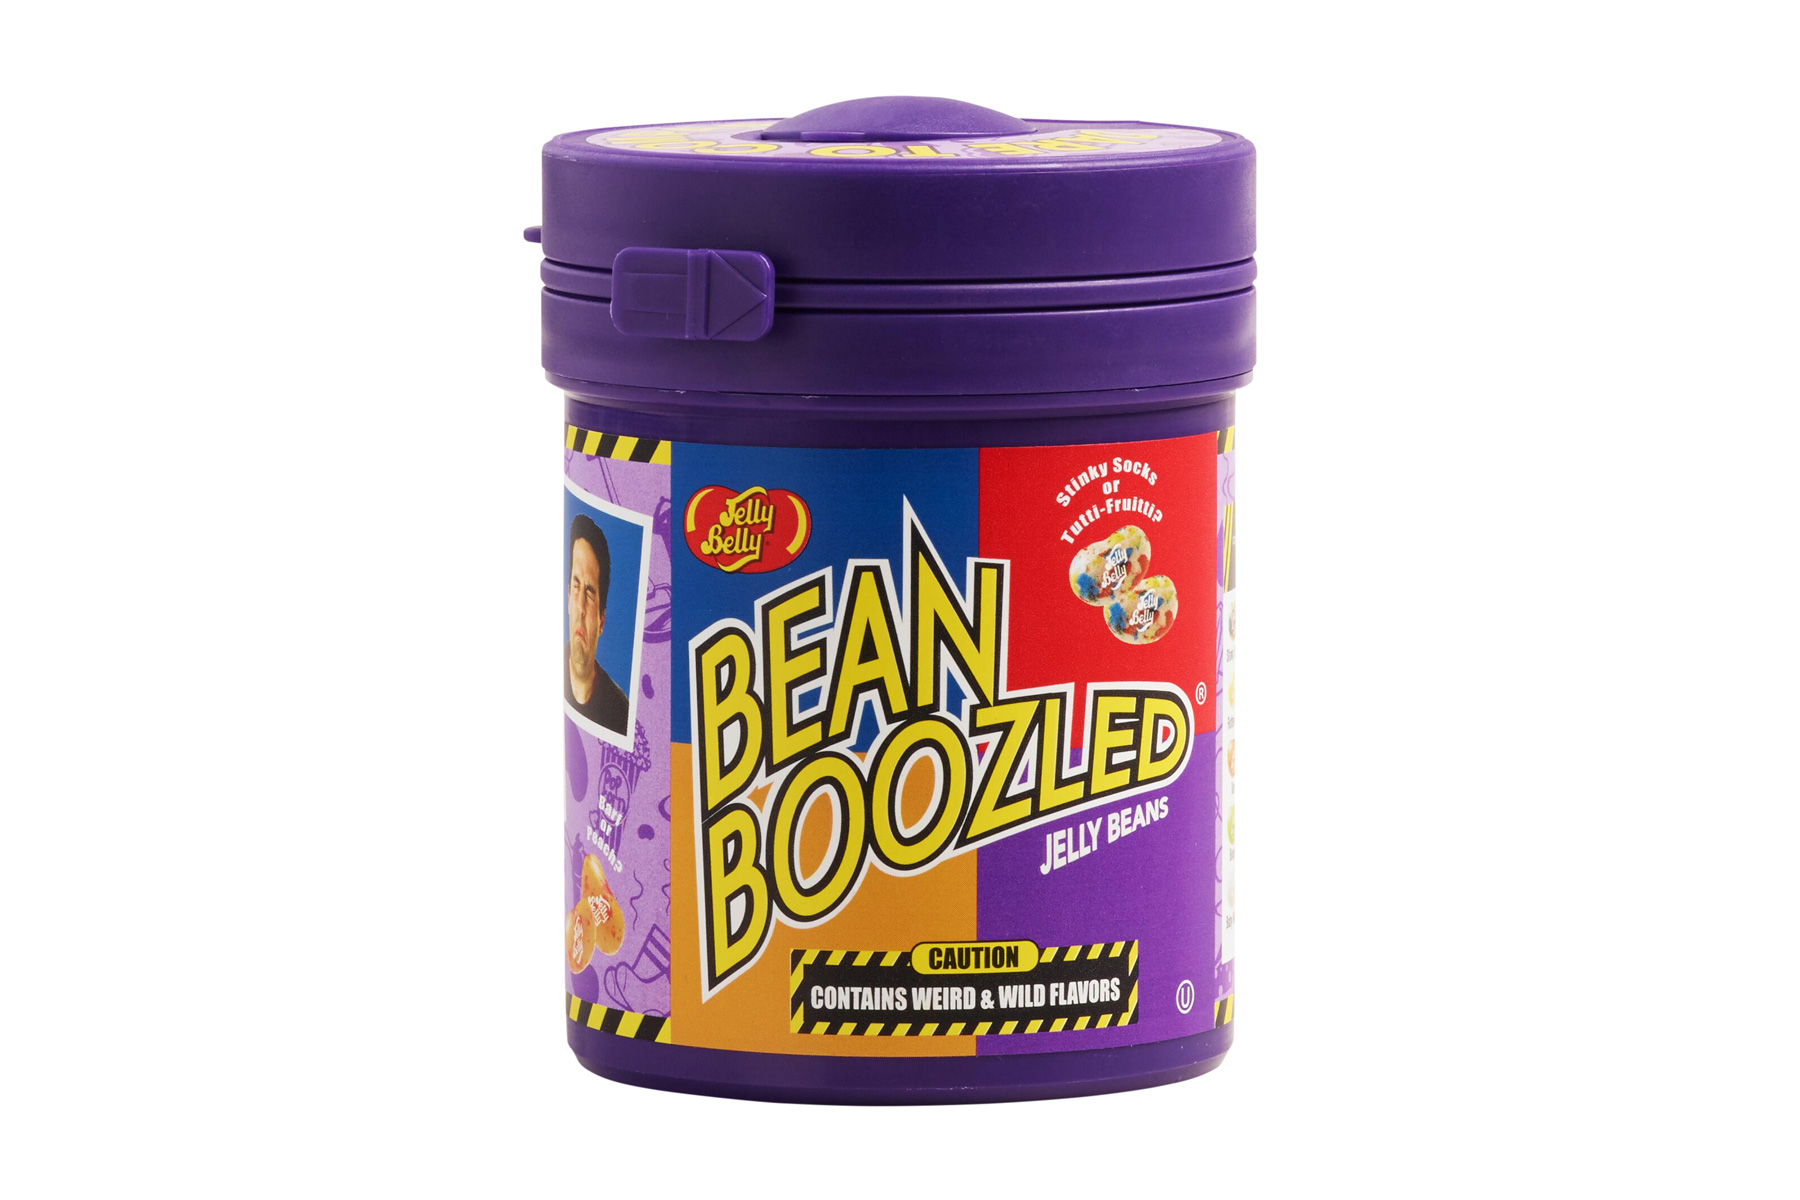 April Easter Fools, BeanBoozled